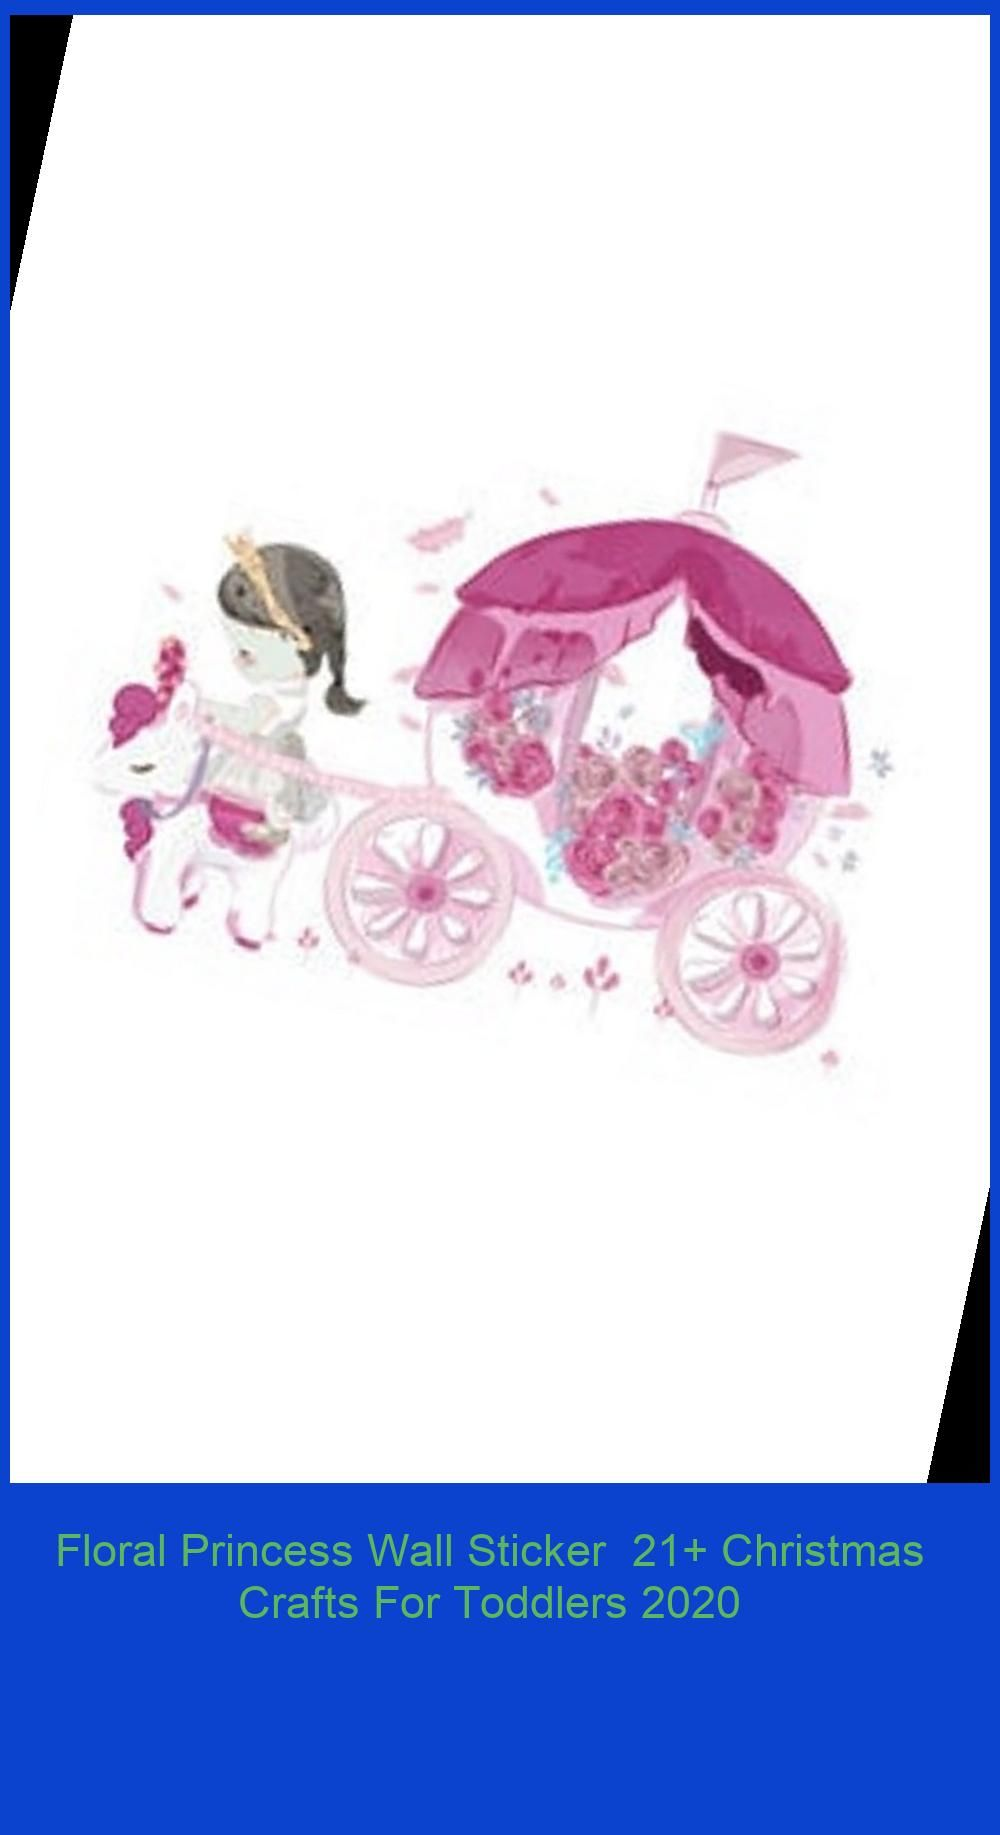 Photo of Floral Princess Wall Sticker  21+ Christmas Crafts For Toddlers 2020